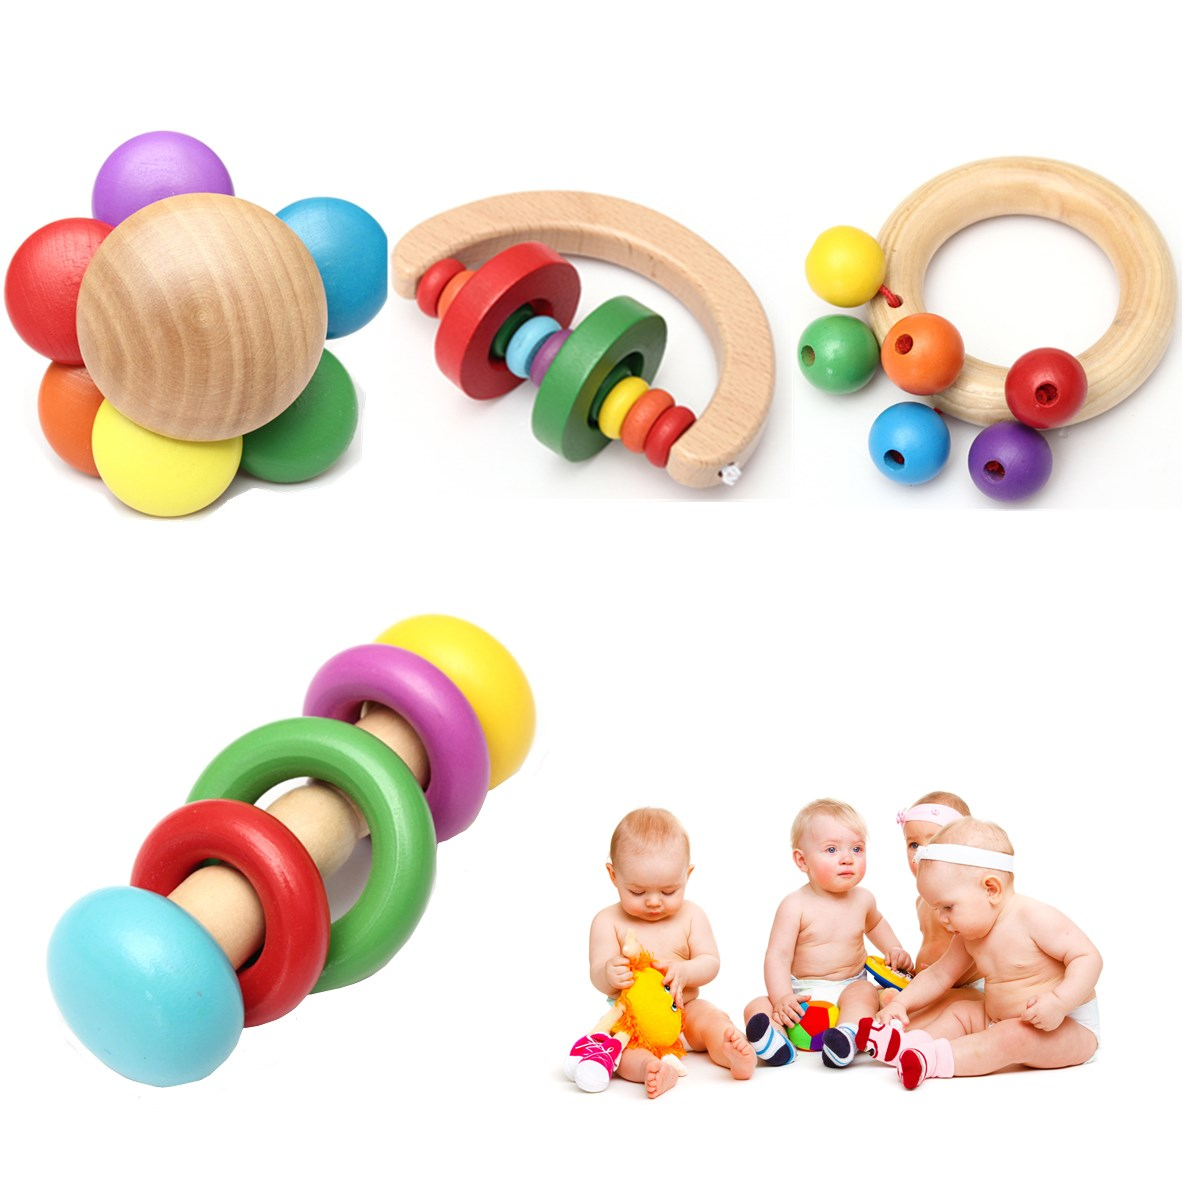 Instrument Development Toys Musical Education Percussion High Quality Funny Design Kid Baby Wooden Bell Rattle Toy Handbell(China (Mainland))